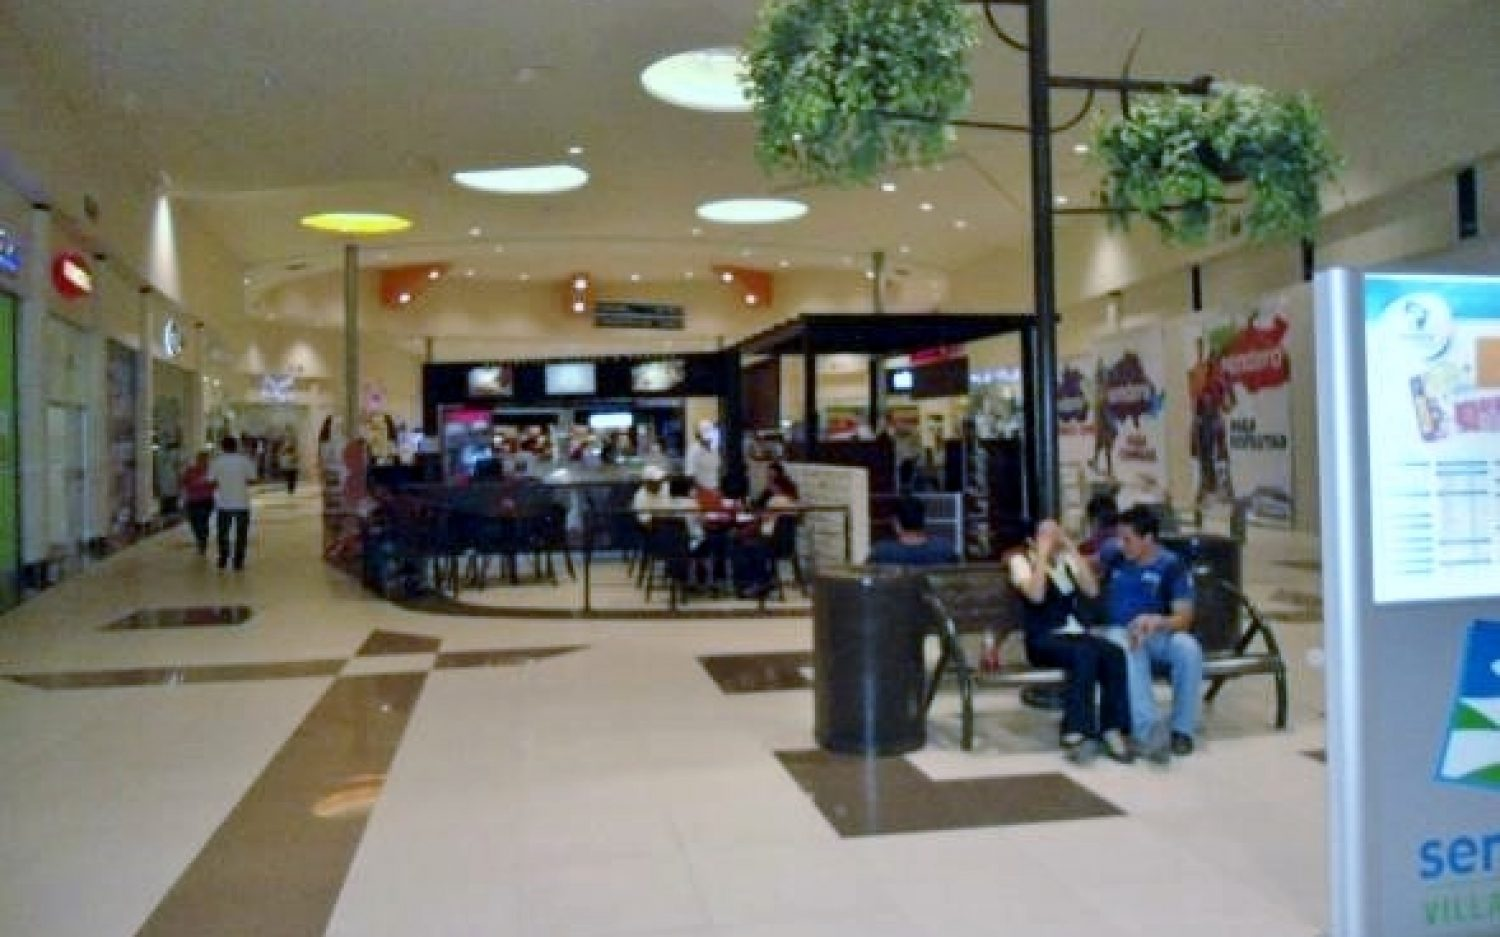 Co-Plaza Sendero Villahermosa (27)